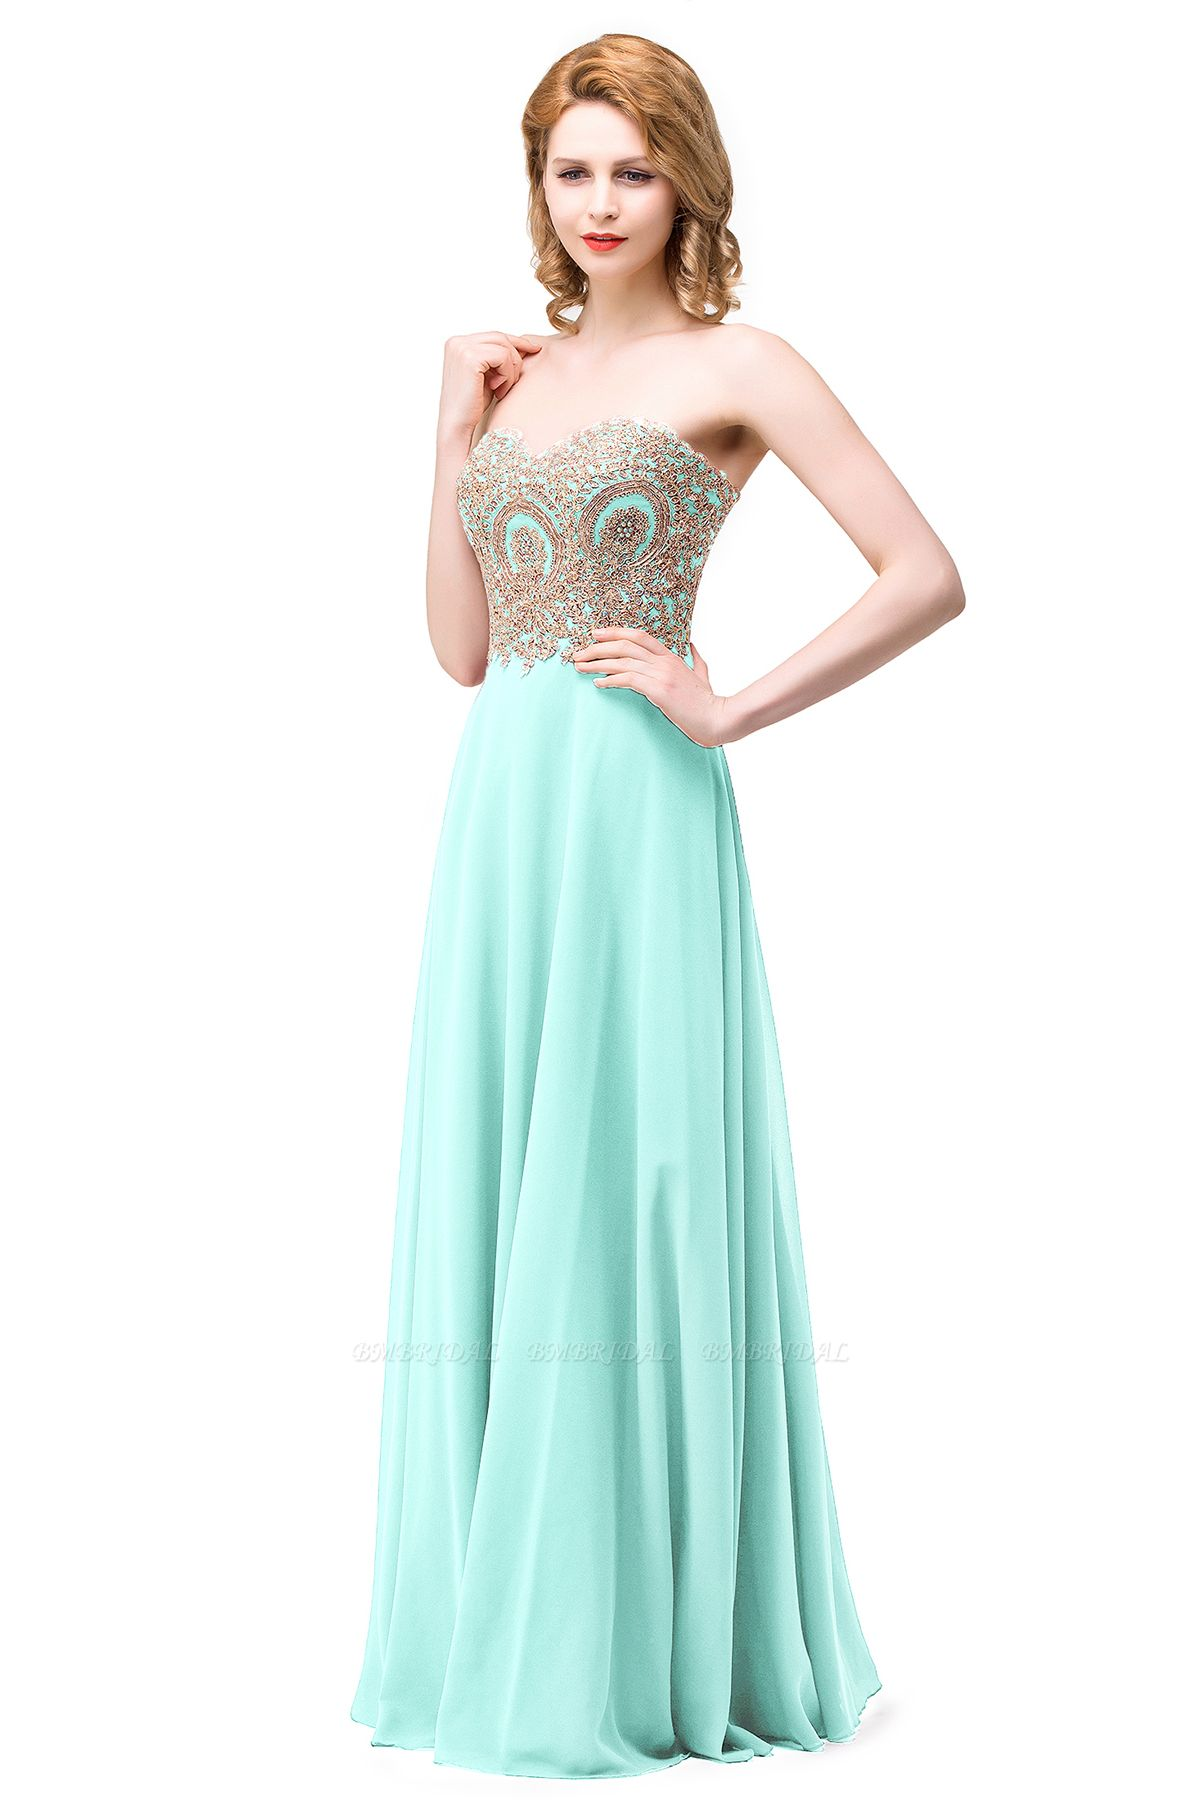 BMbridal Women's Strapless Embroidery Beaded Prom Formal Dress